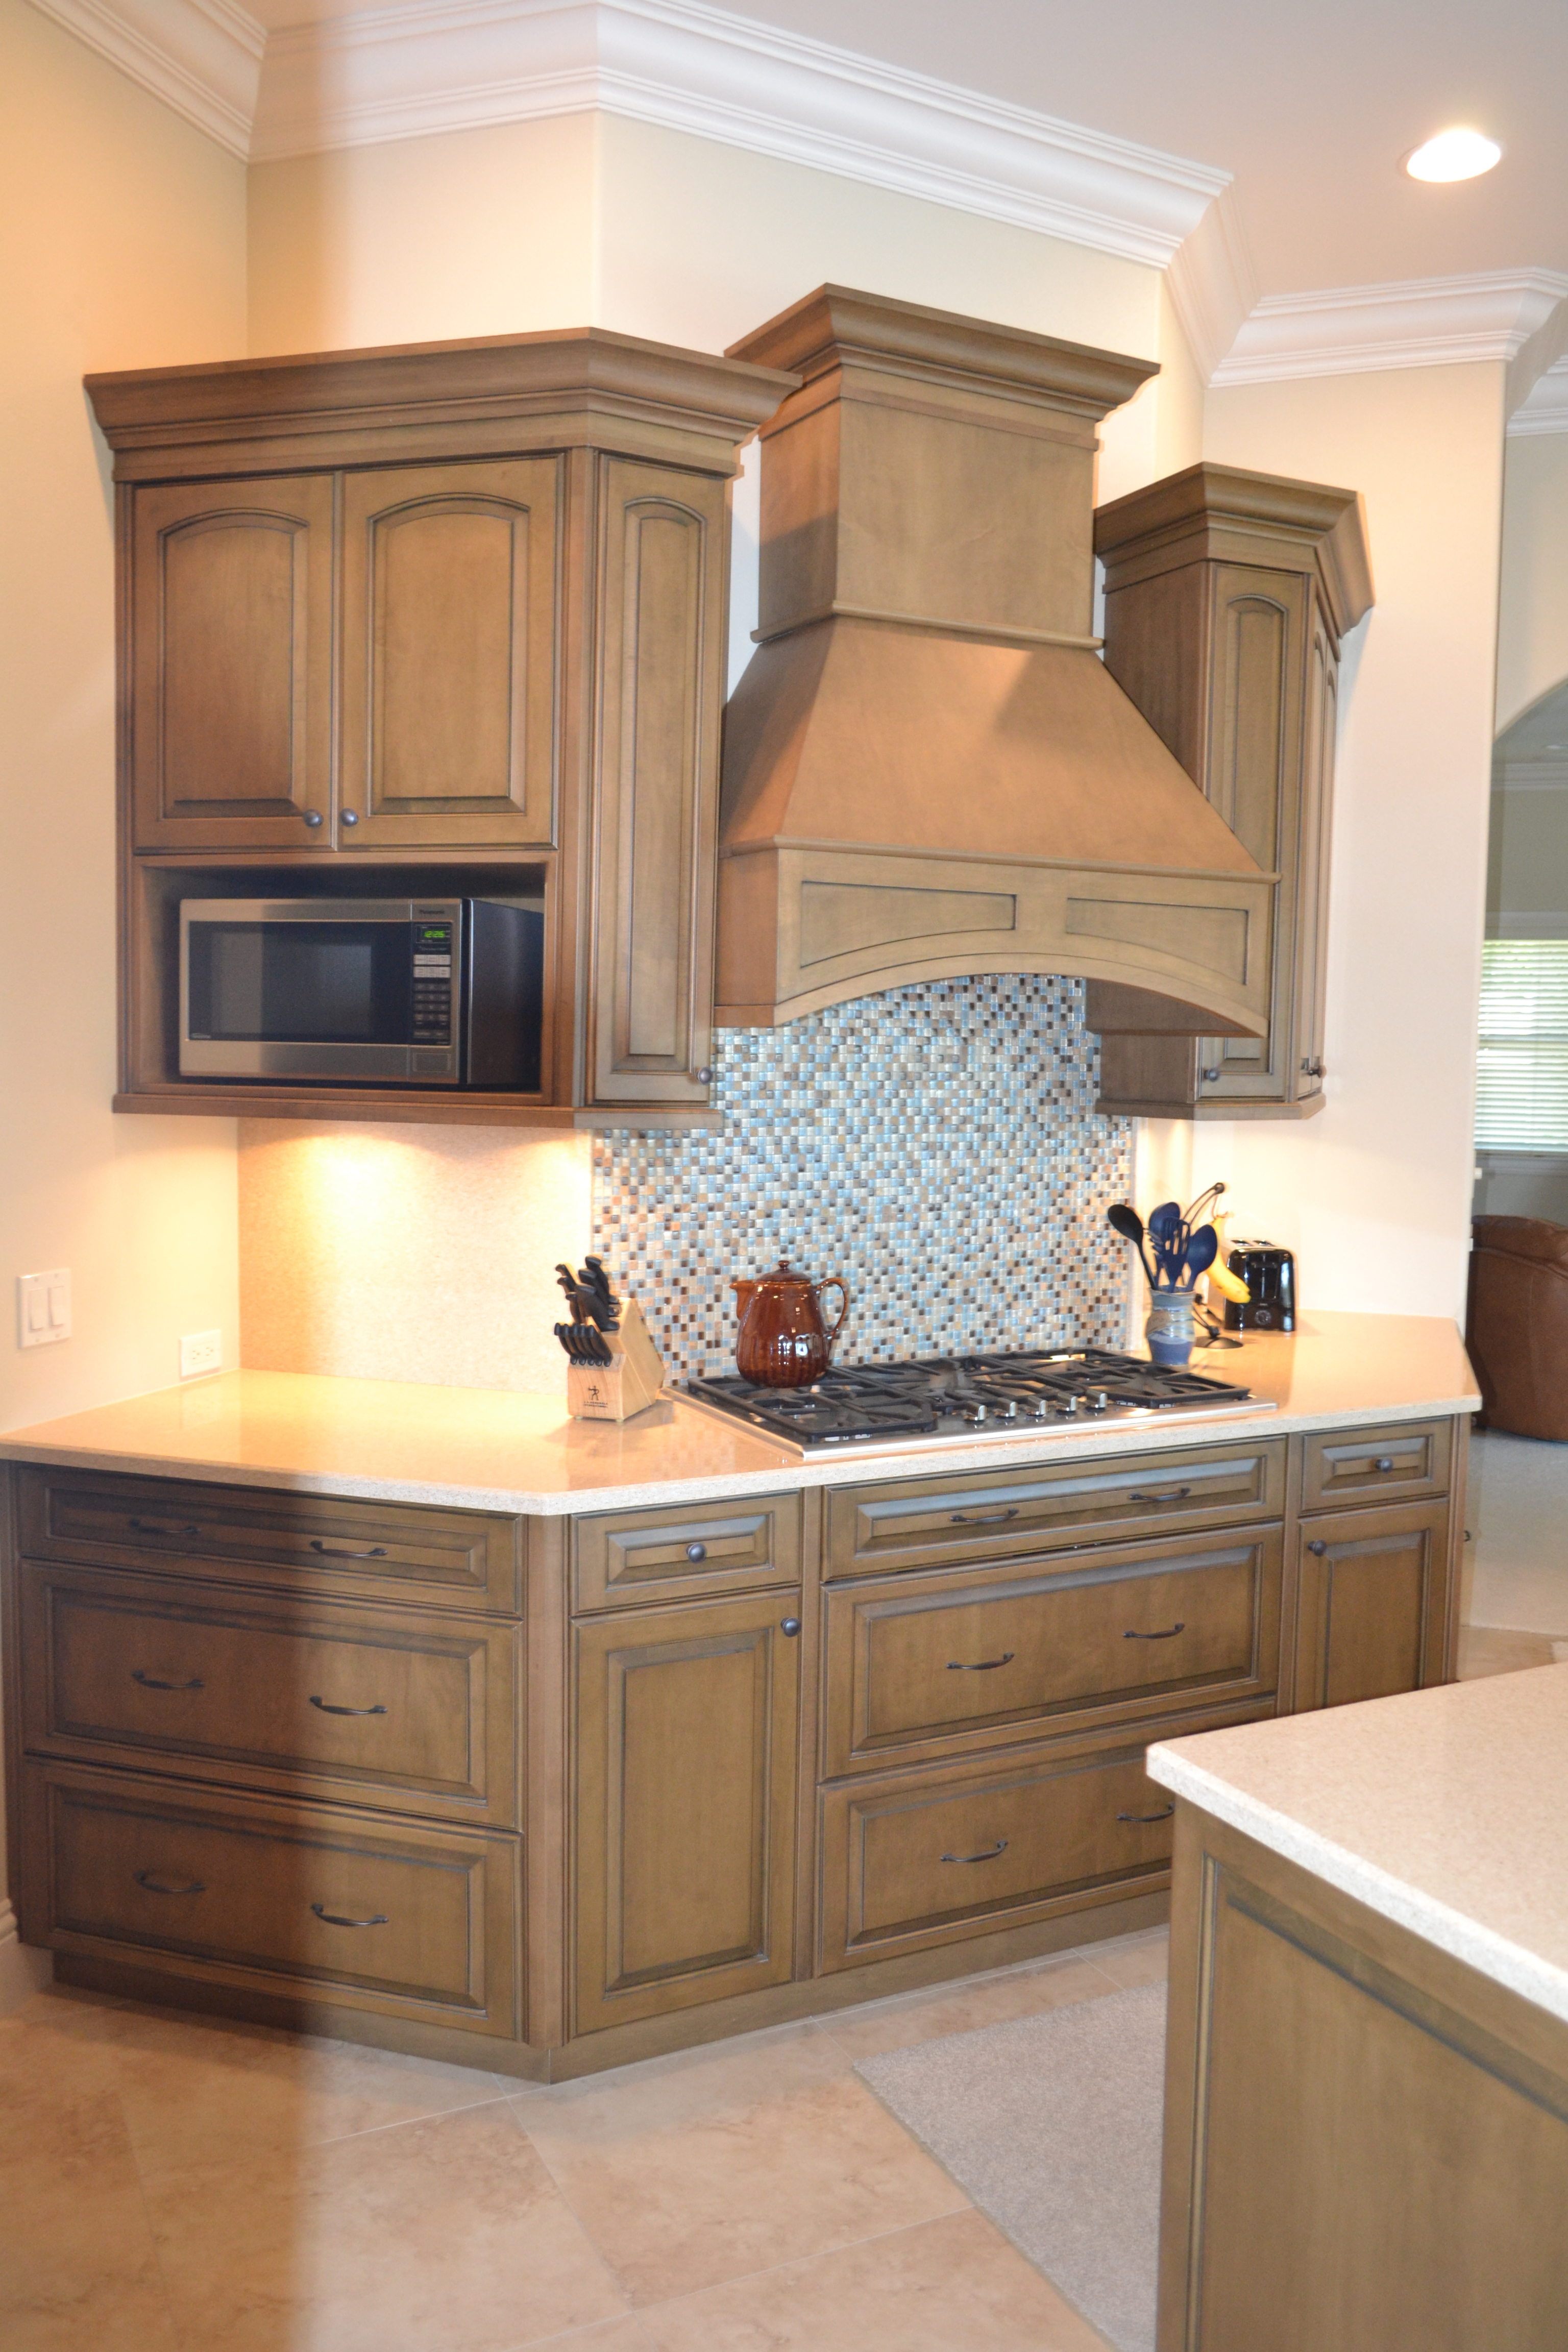 Weston Kitchen hood